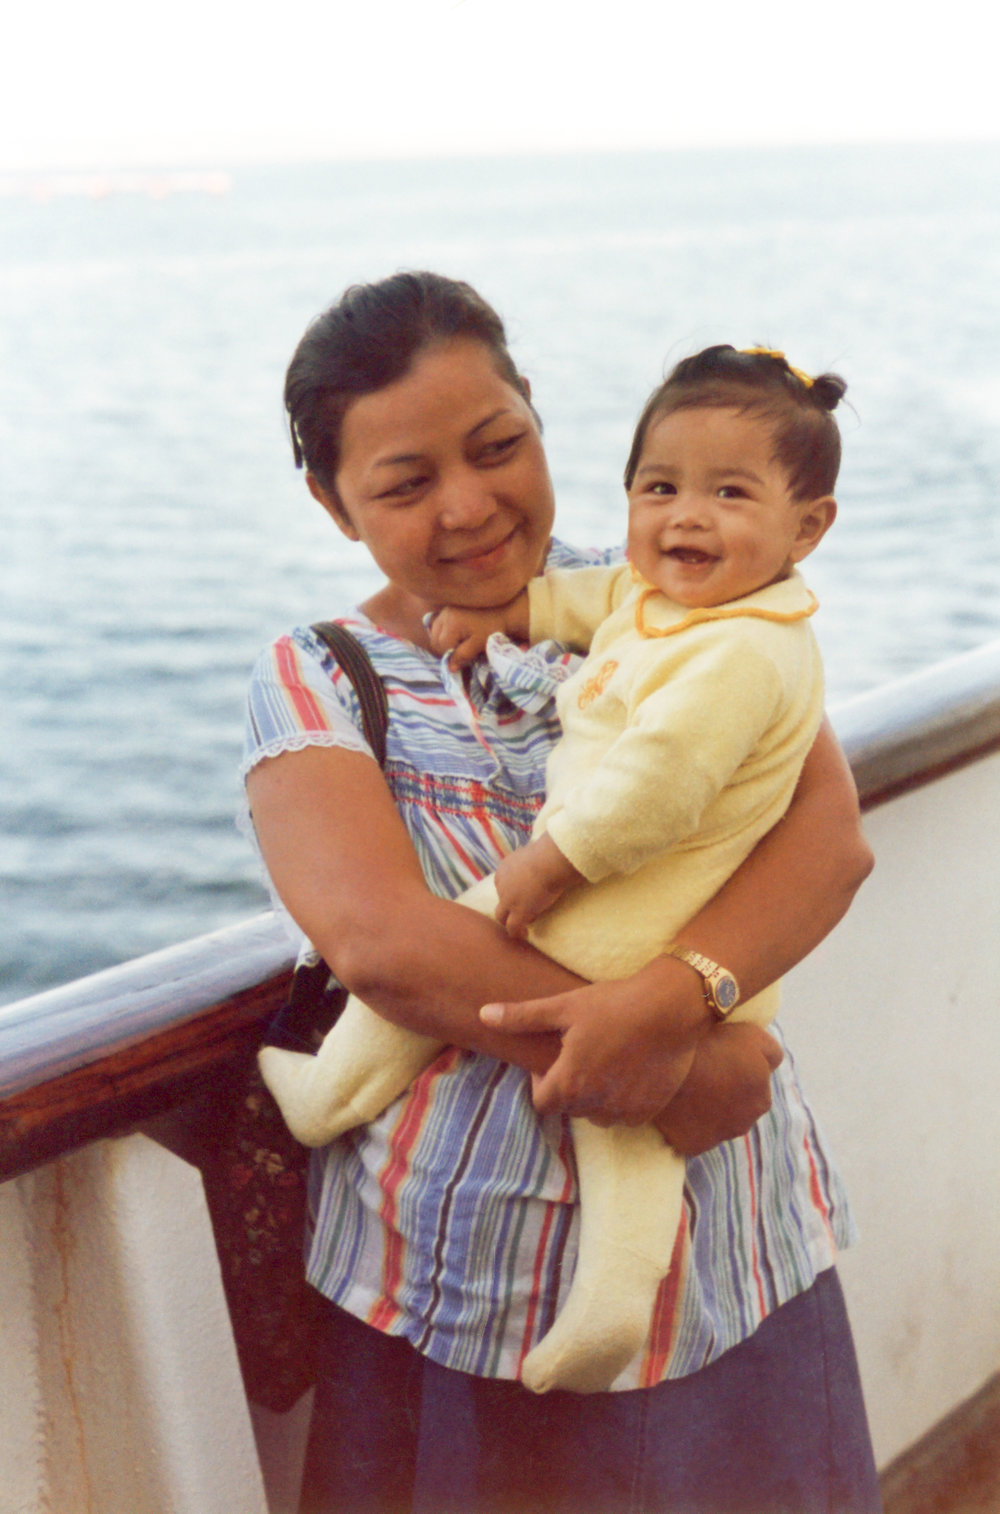 Mommy and Amanda on ferry.jpg